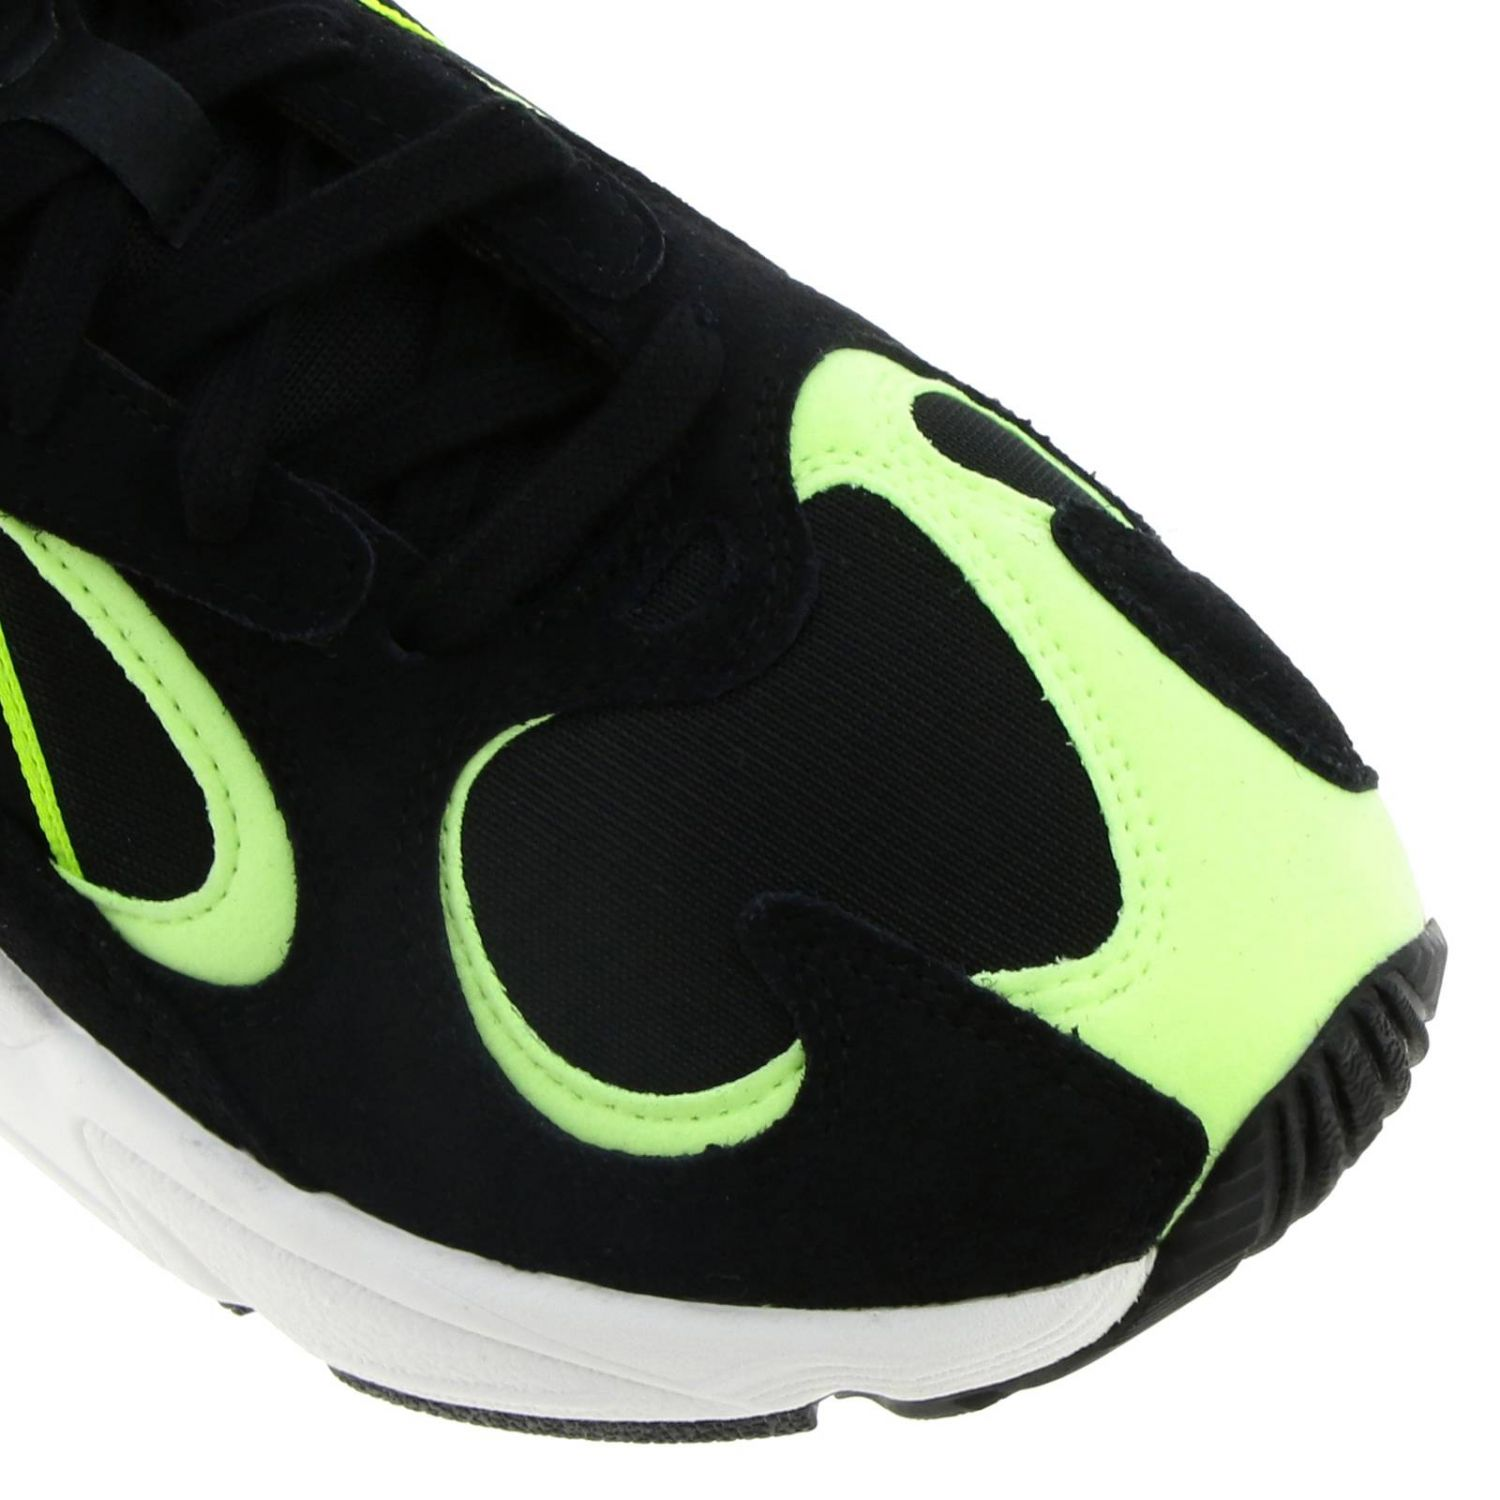 Sneakers Adidas Originals: Sneakers Yung-1 Adidas Originals in mesh fluo camoscio e rete con suola in gomma nero 3